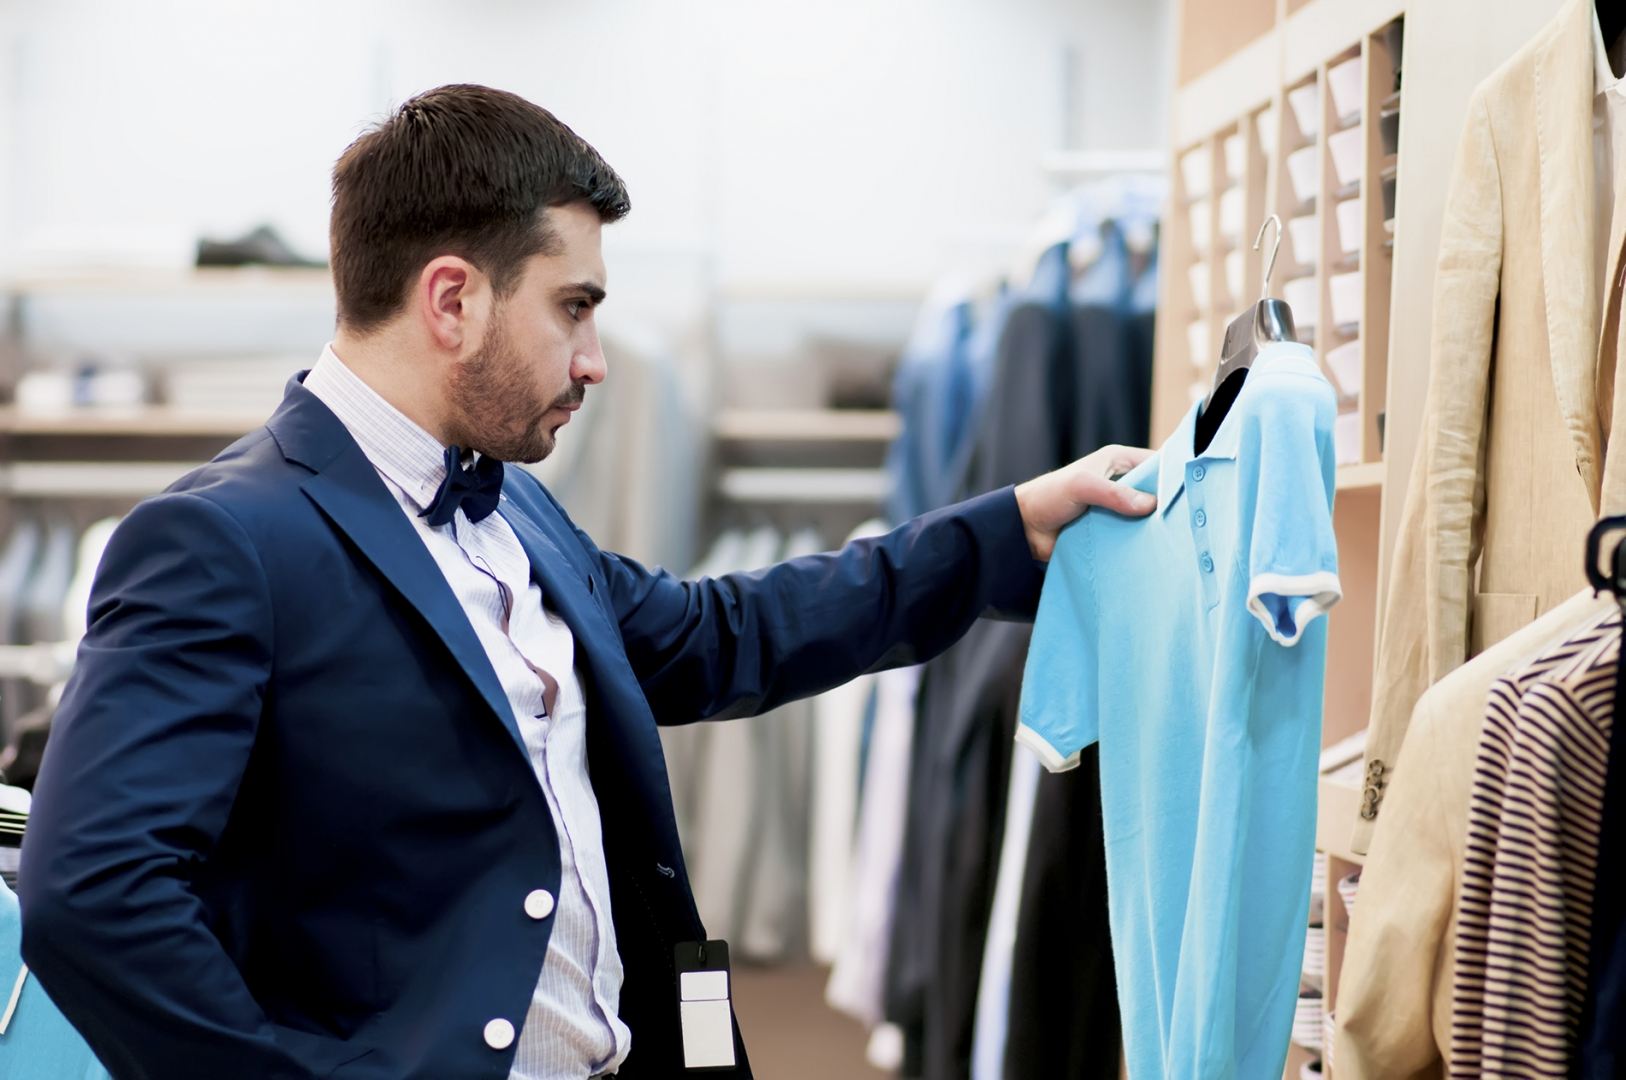 businessman looking through shirts at a retail store